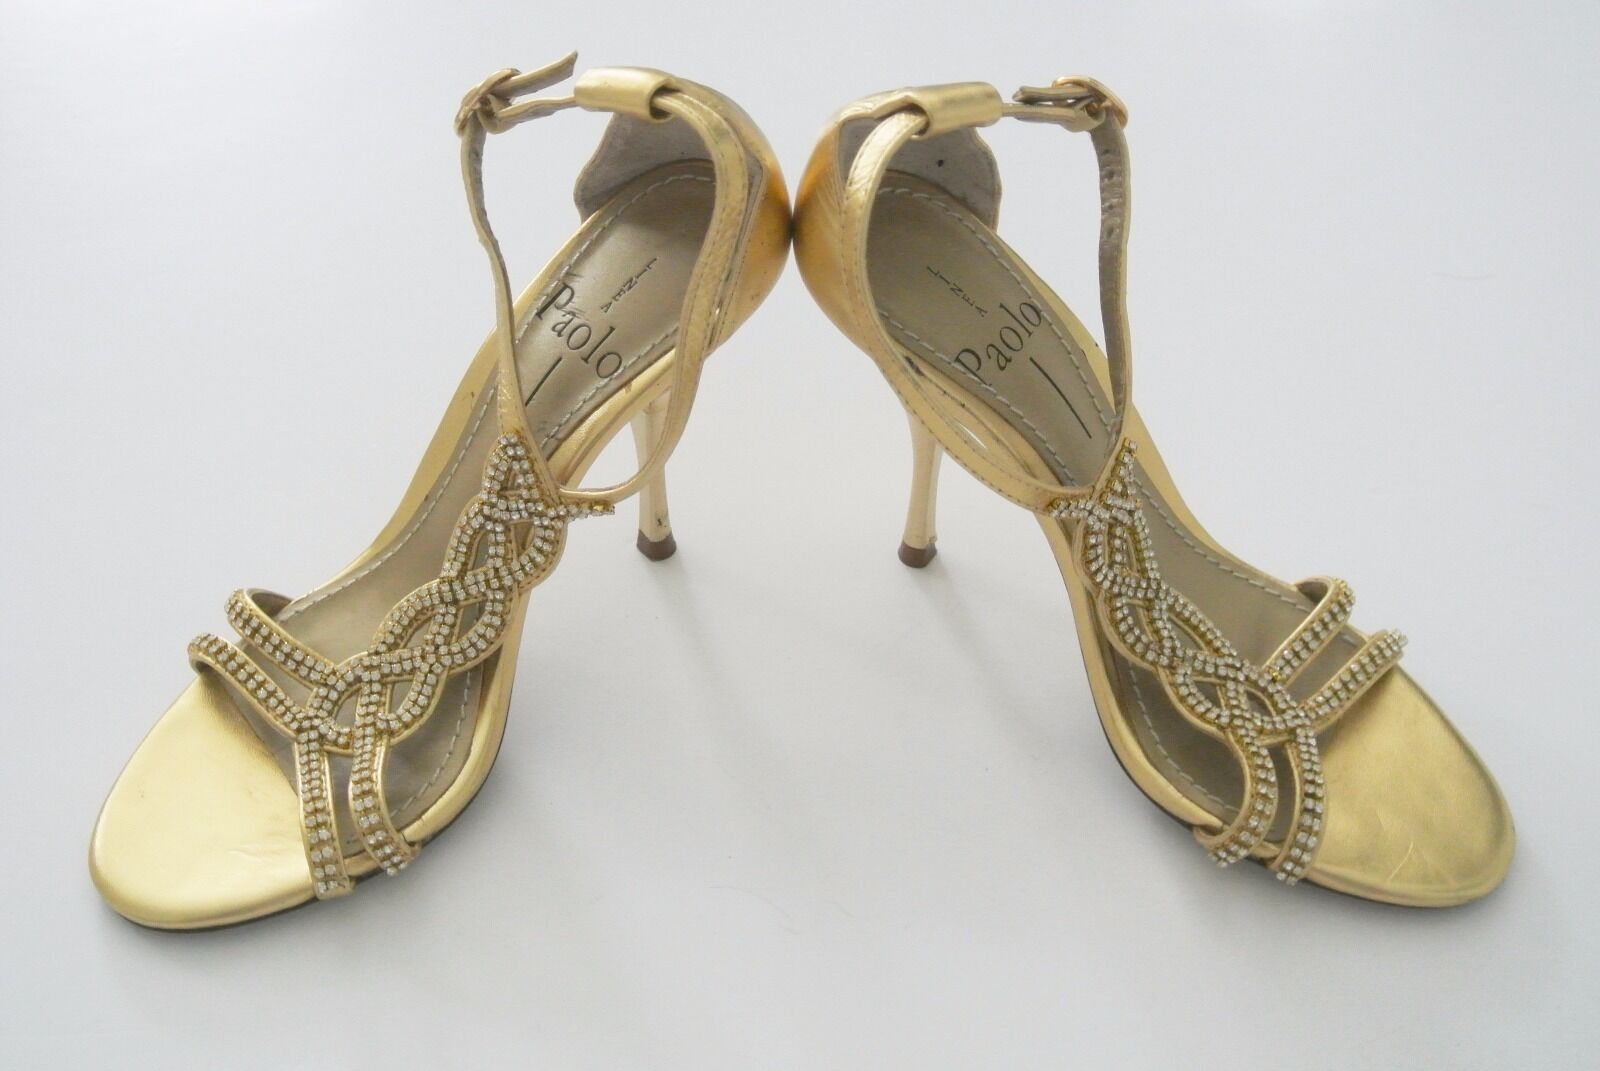 Gold w/ Crystal Embellishments LINEA PAOLO Strappy 4-in Heels Sandals, Sz 4M